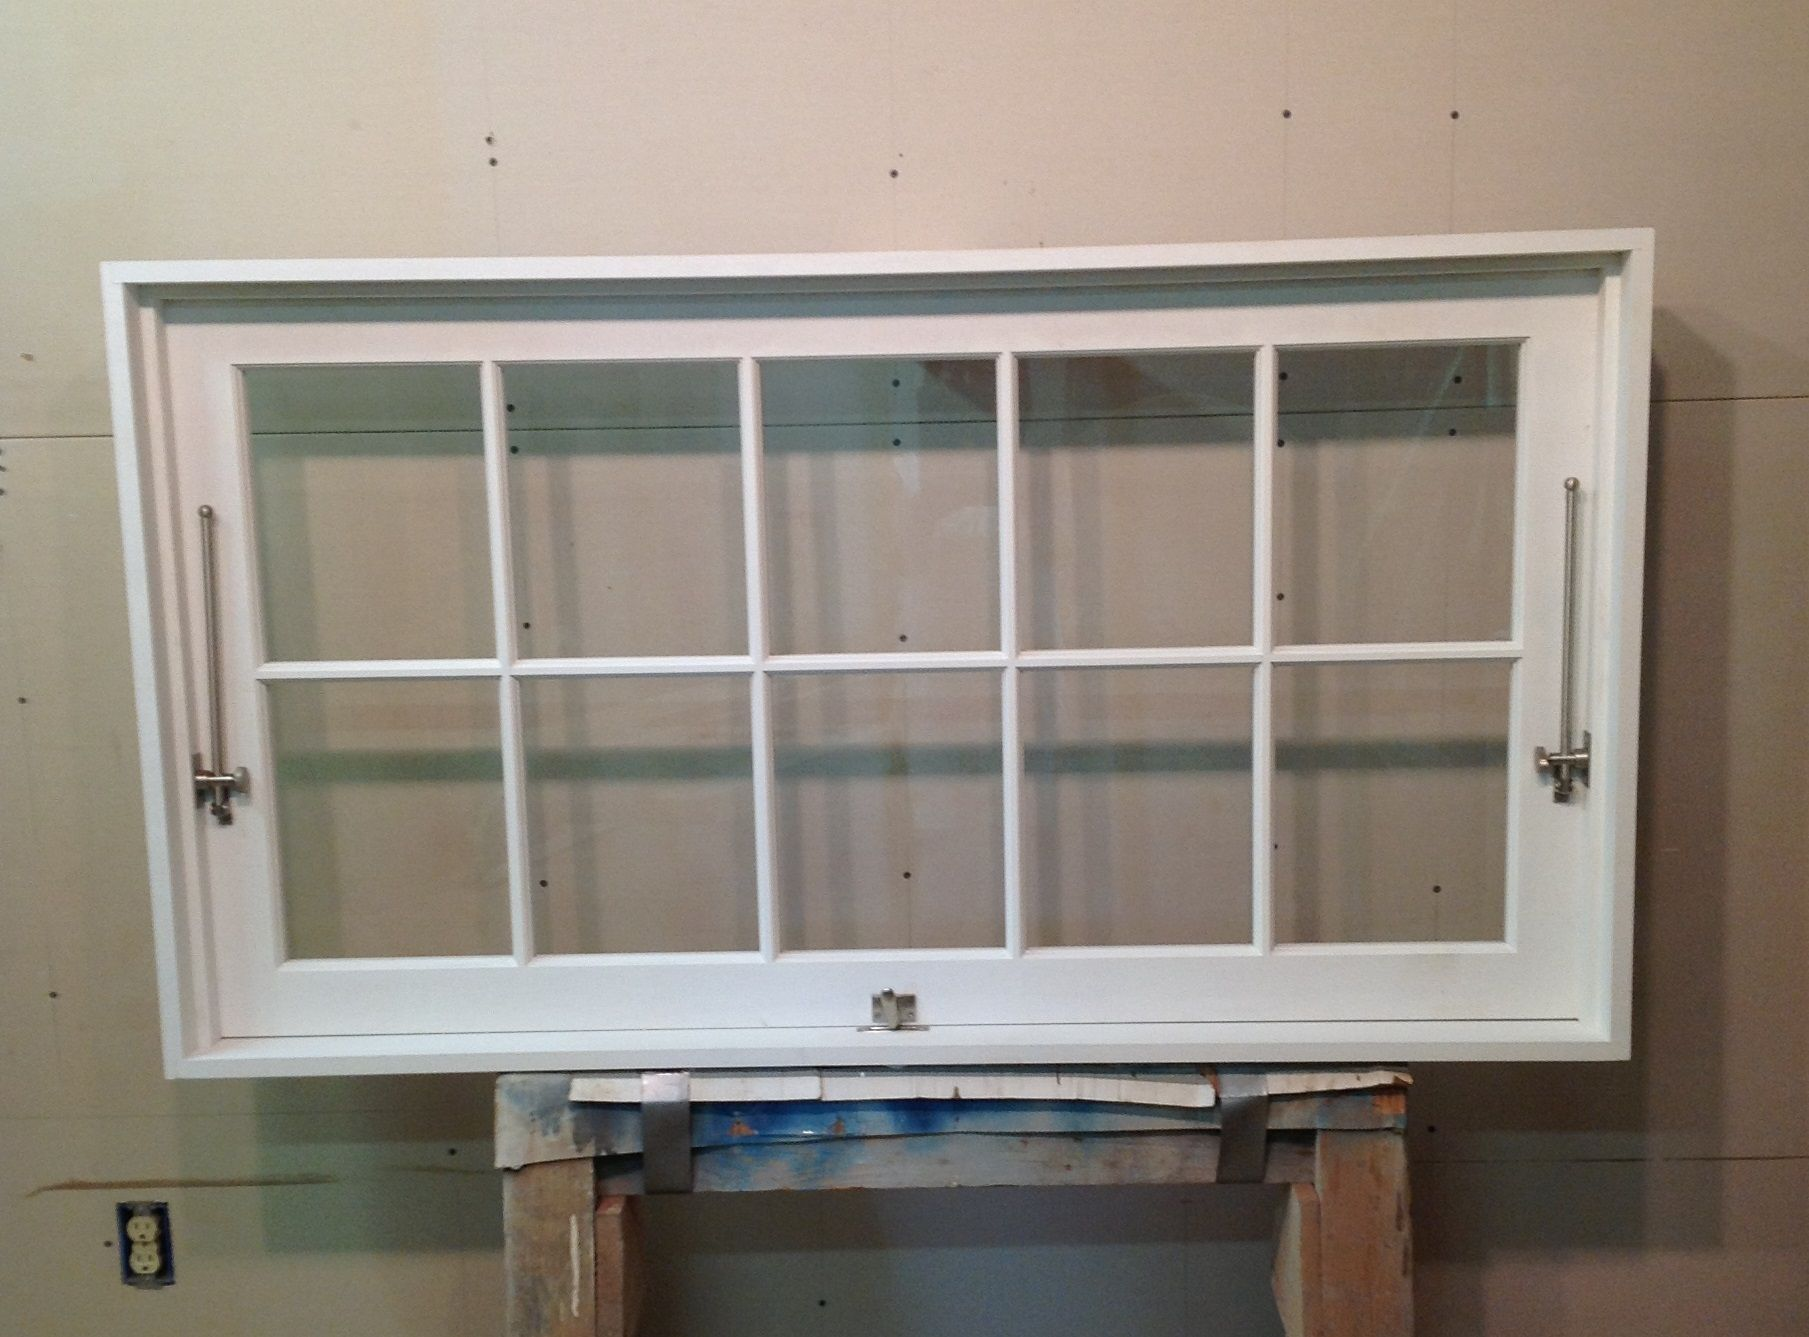 Wood custom awning windows jim illingworth millwork llc for Custom transom windows